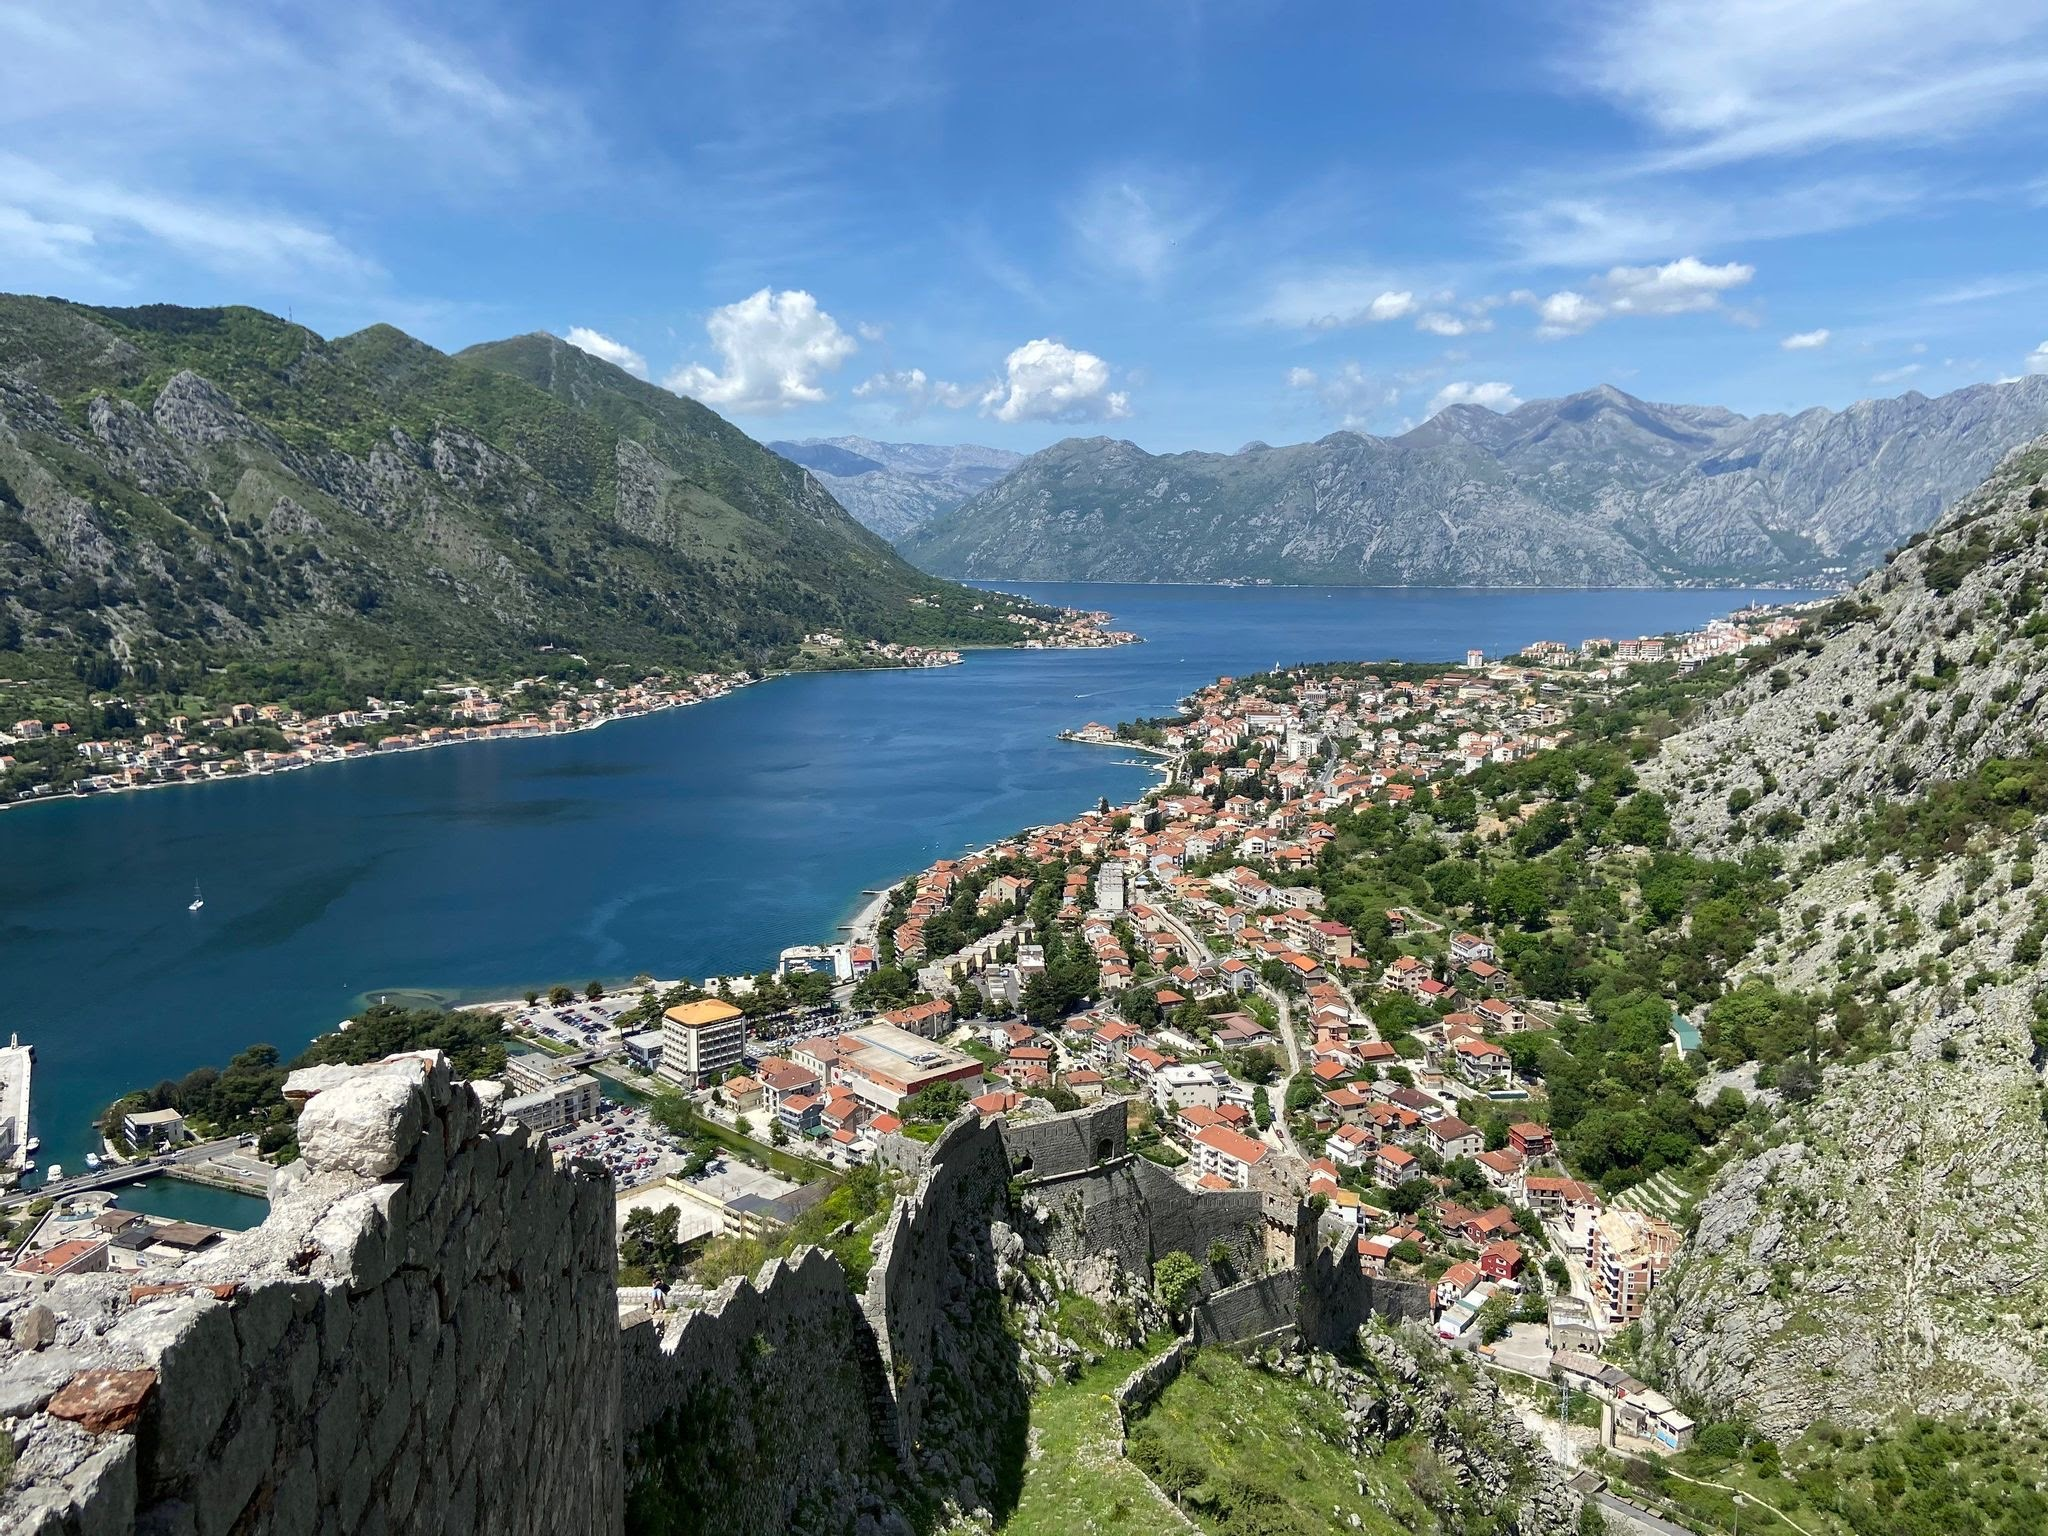 A historic town of Kotor sat in the valley by the water's edge. There are mountains set all around the town with a striking old fortress wall rising from the old town like a spine of a dinosaurs' back.